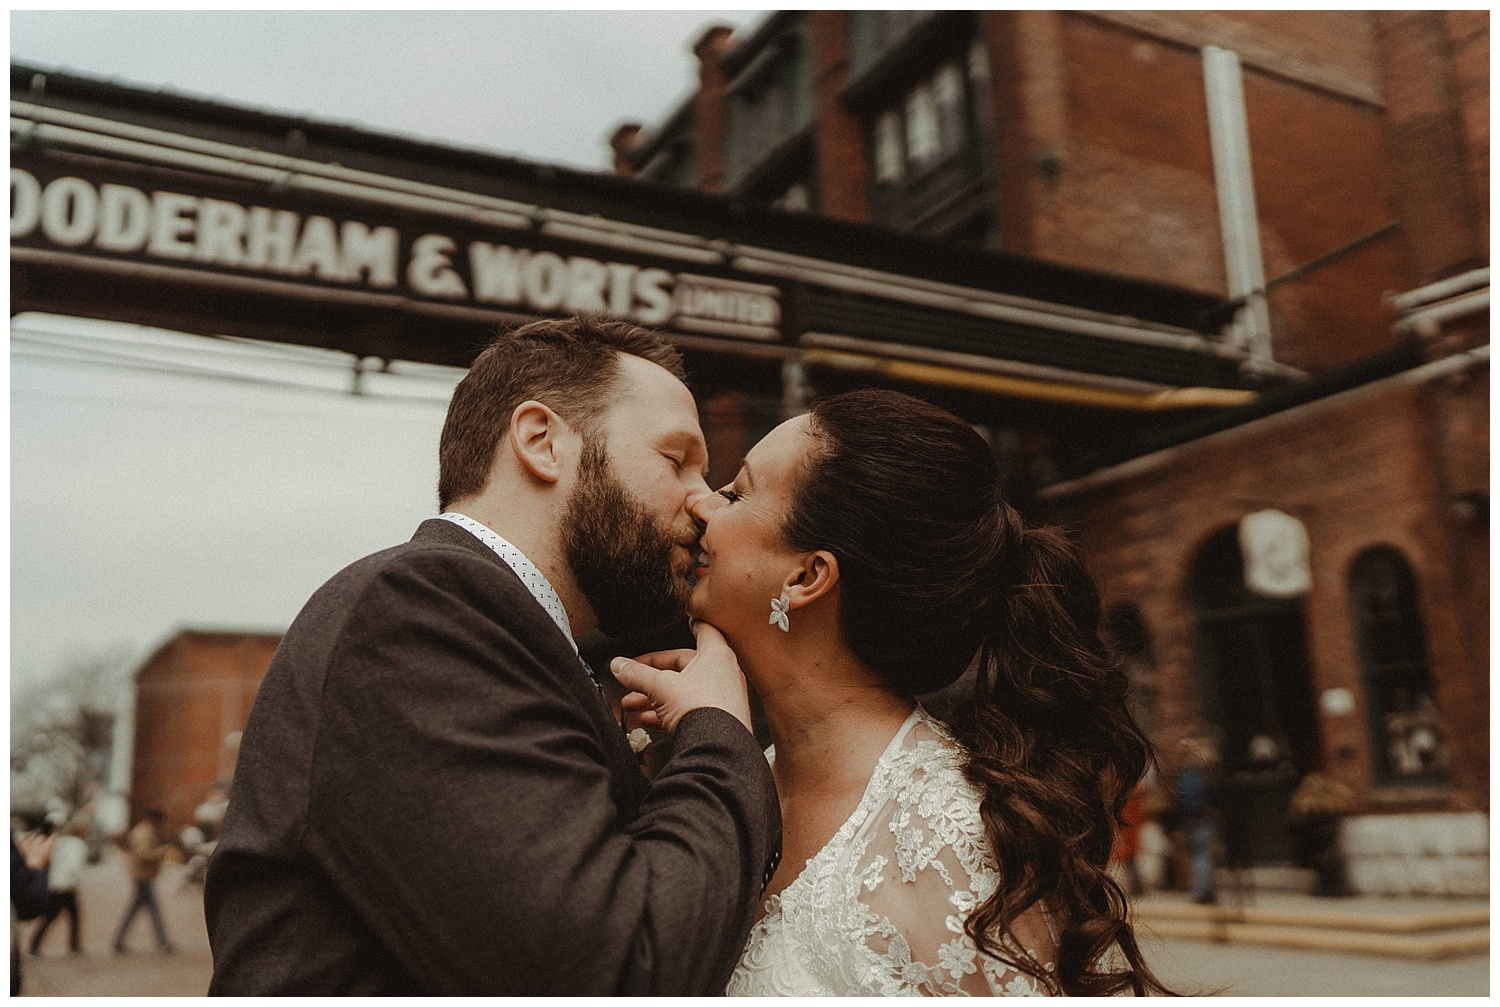 Katie Marie Photography | Archeo Wedding Arta Gallery Wedding | Distillery District Wedding | Toronto Wedding Photographer | Hamilton Toronto Ontario Wedding Photographer |_0019.jpg